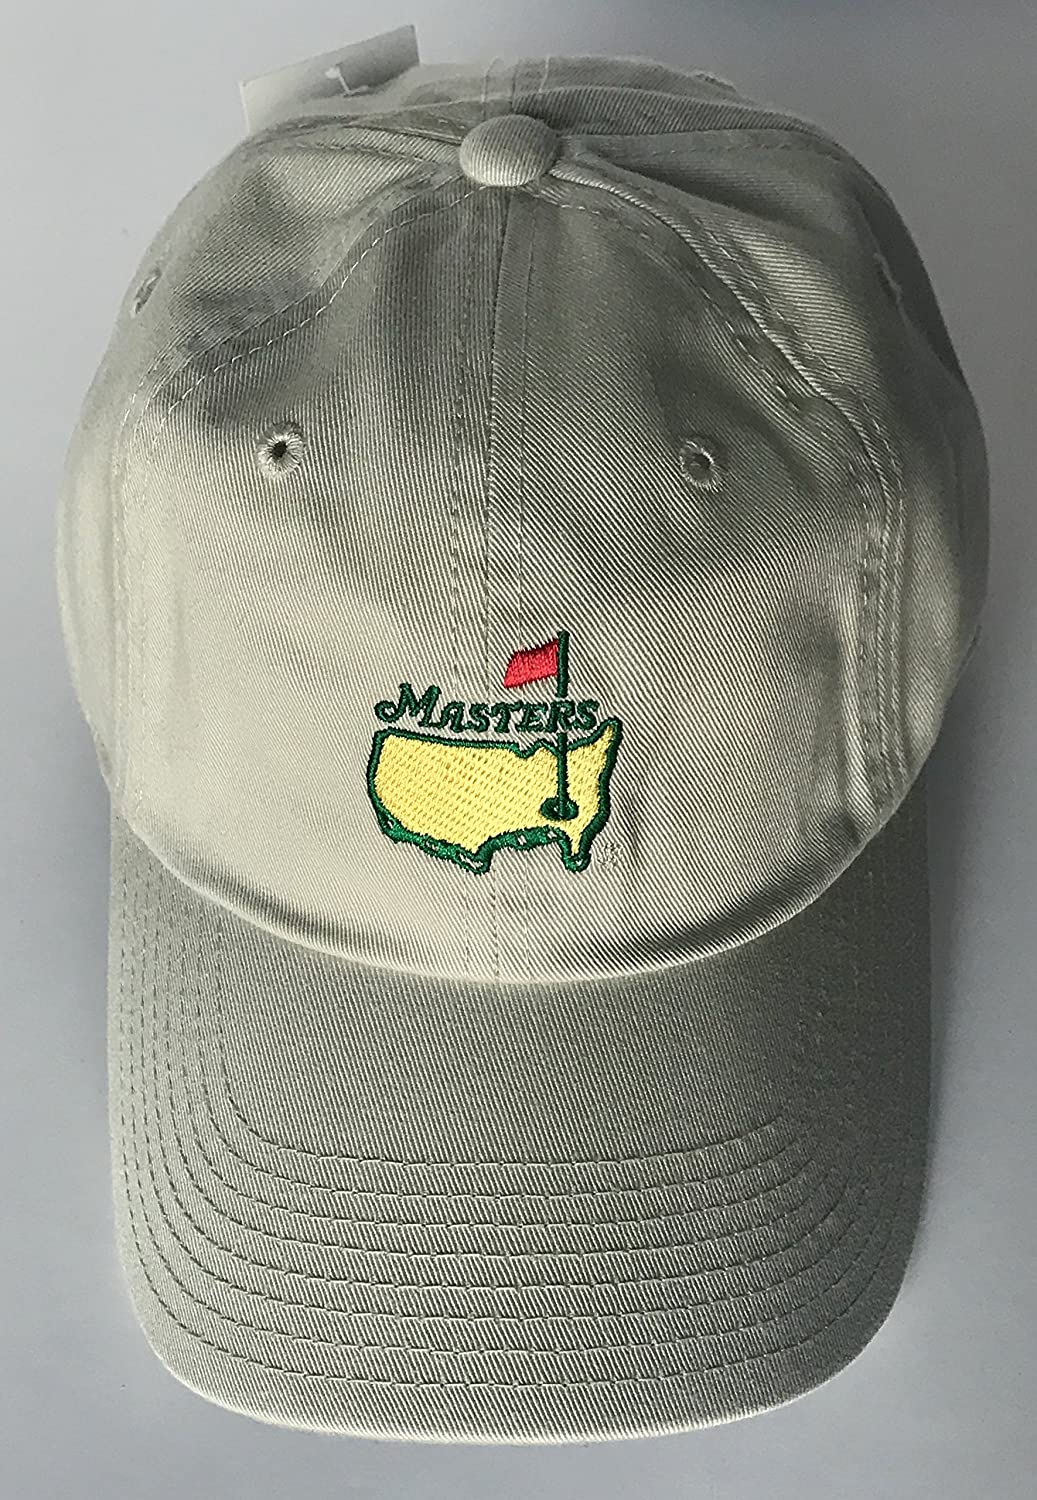 03866d0ac Masters golf hat stone augusta national american needle 2019 pga new ...